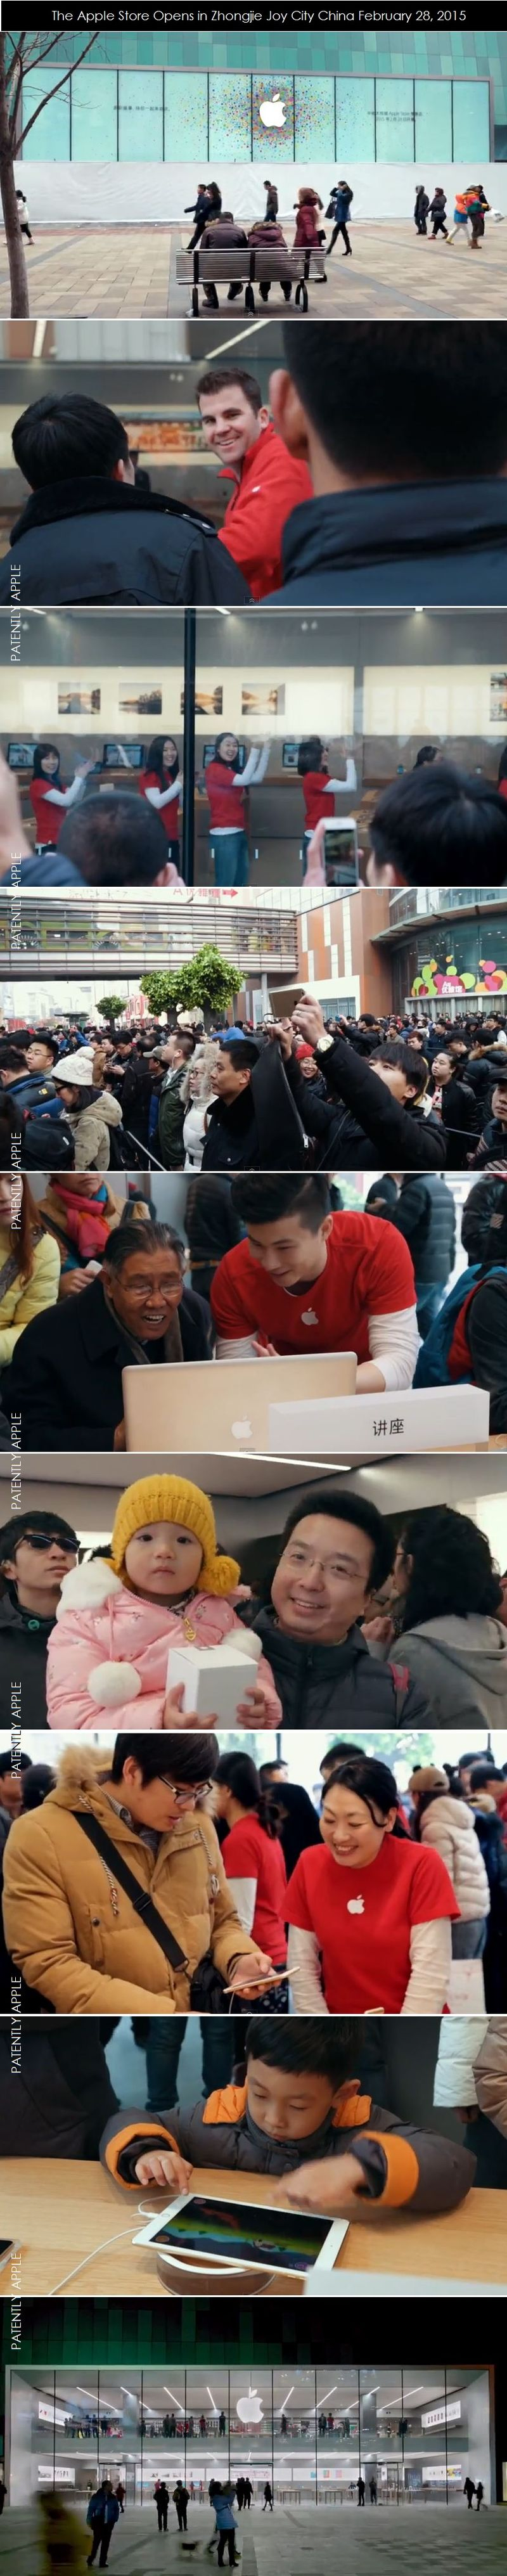 2AAAA - COVER - APPLE STORE IN JOY CITY CHINA FEB 28, 2015